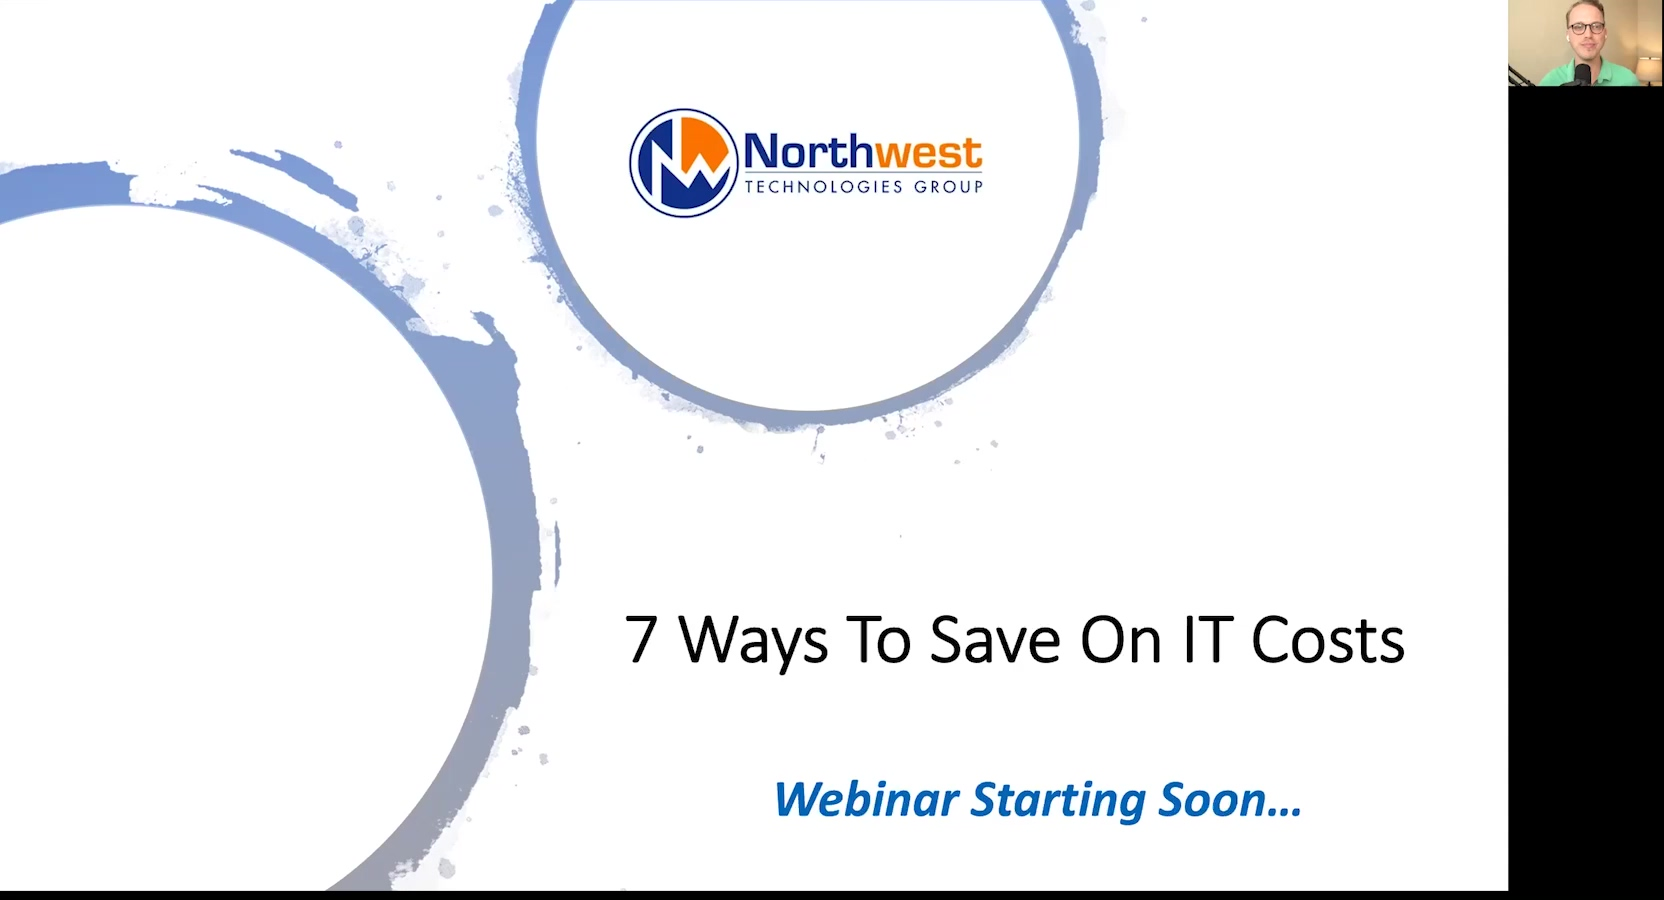 Webinar - 7 Ways To Save On IT Costs